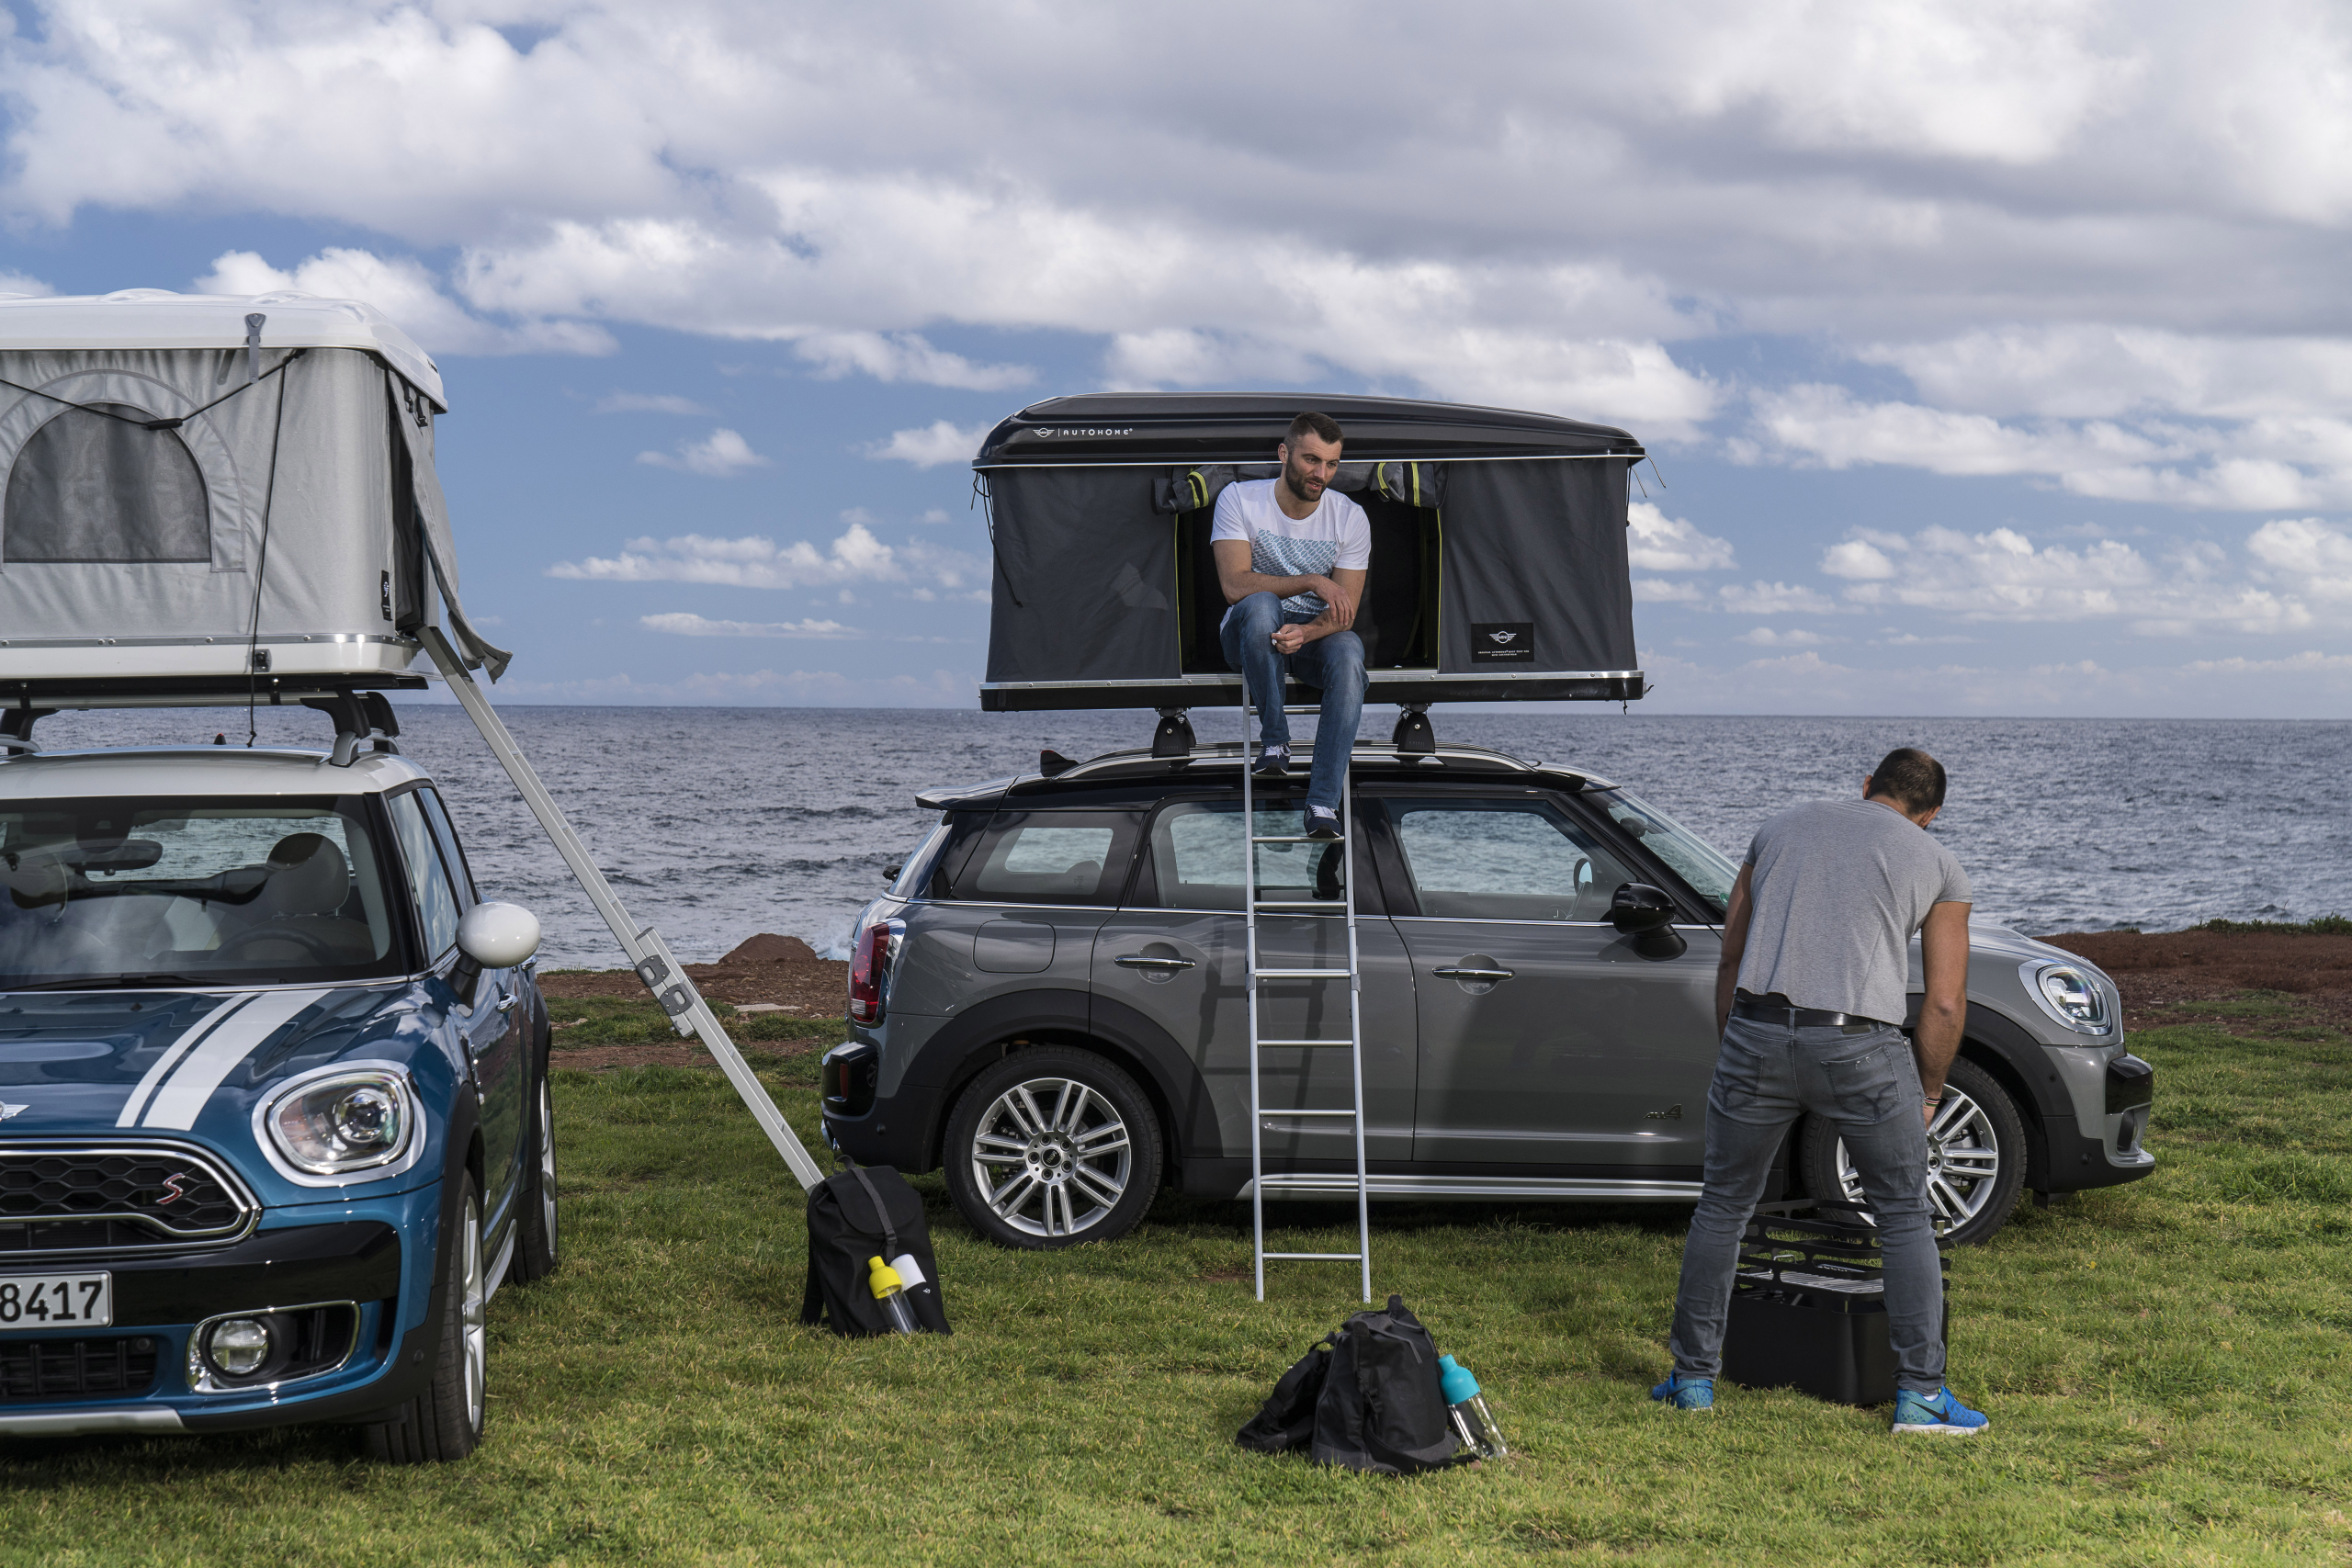 Camping with Mini Countryman